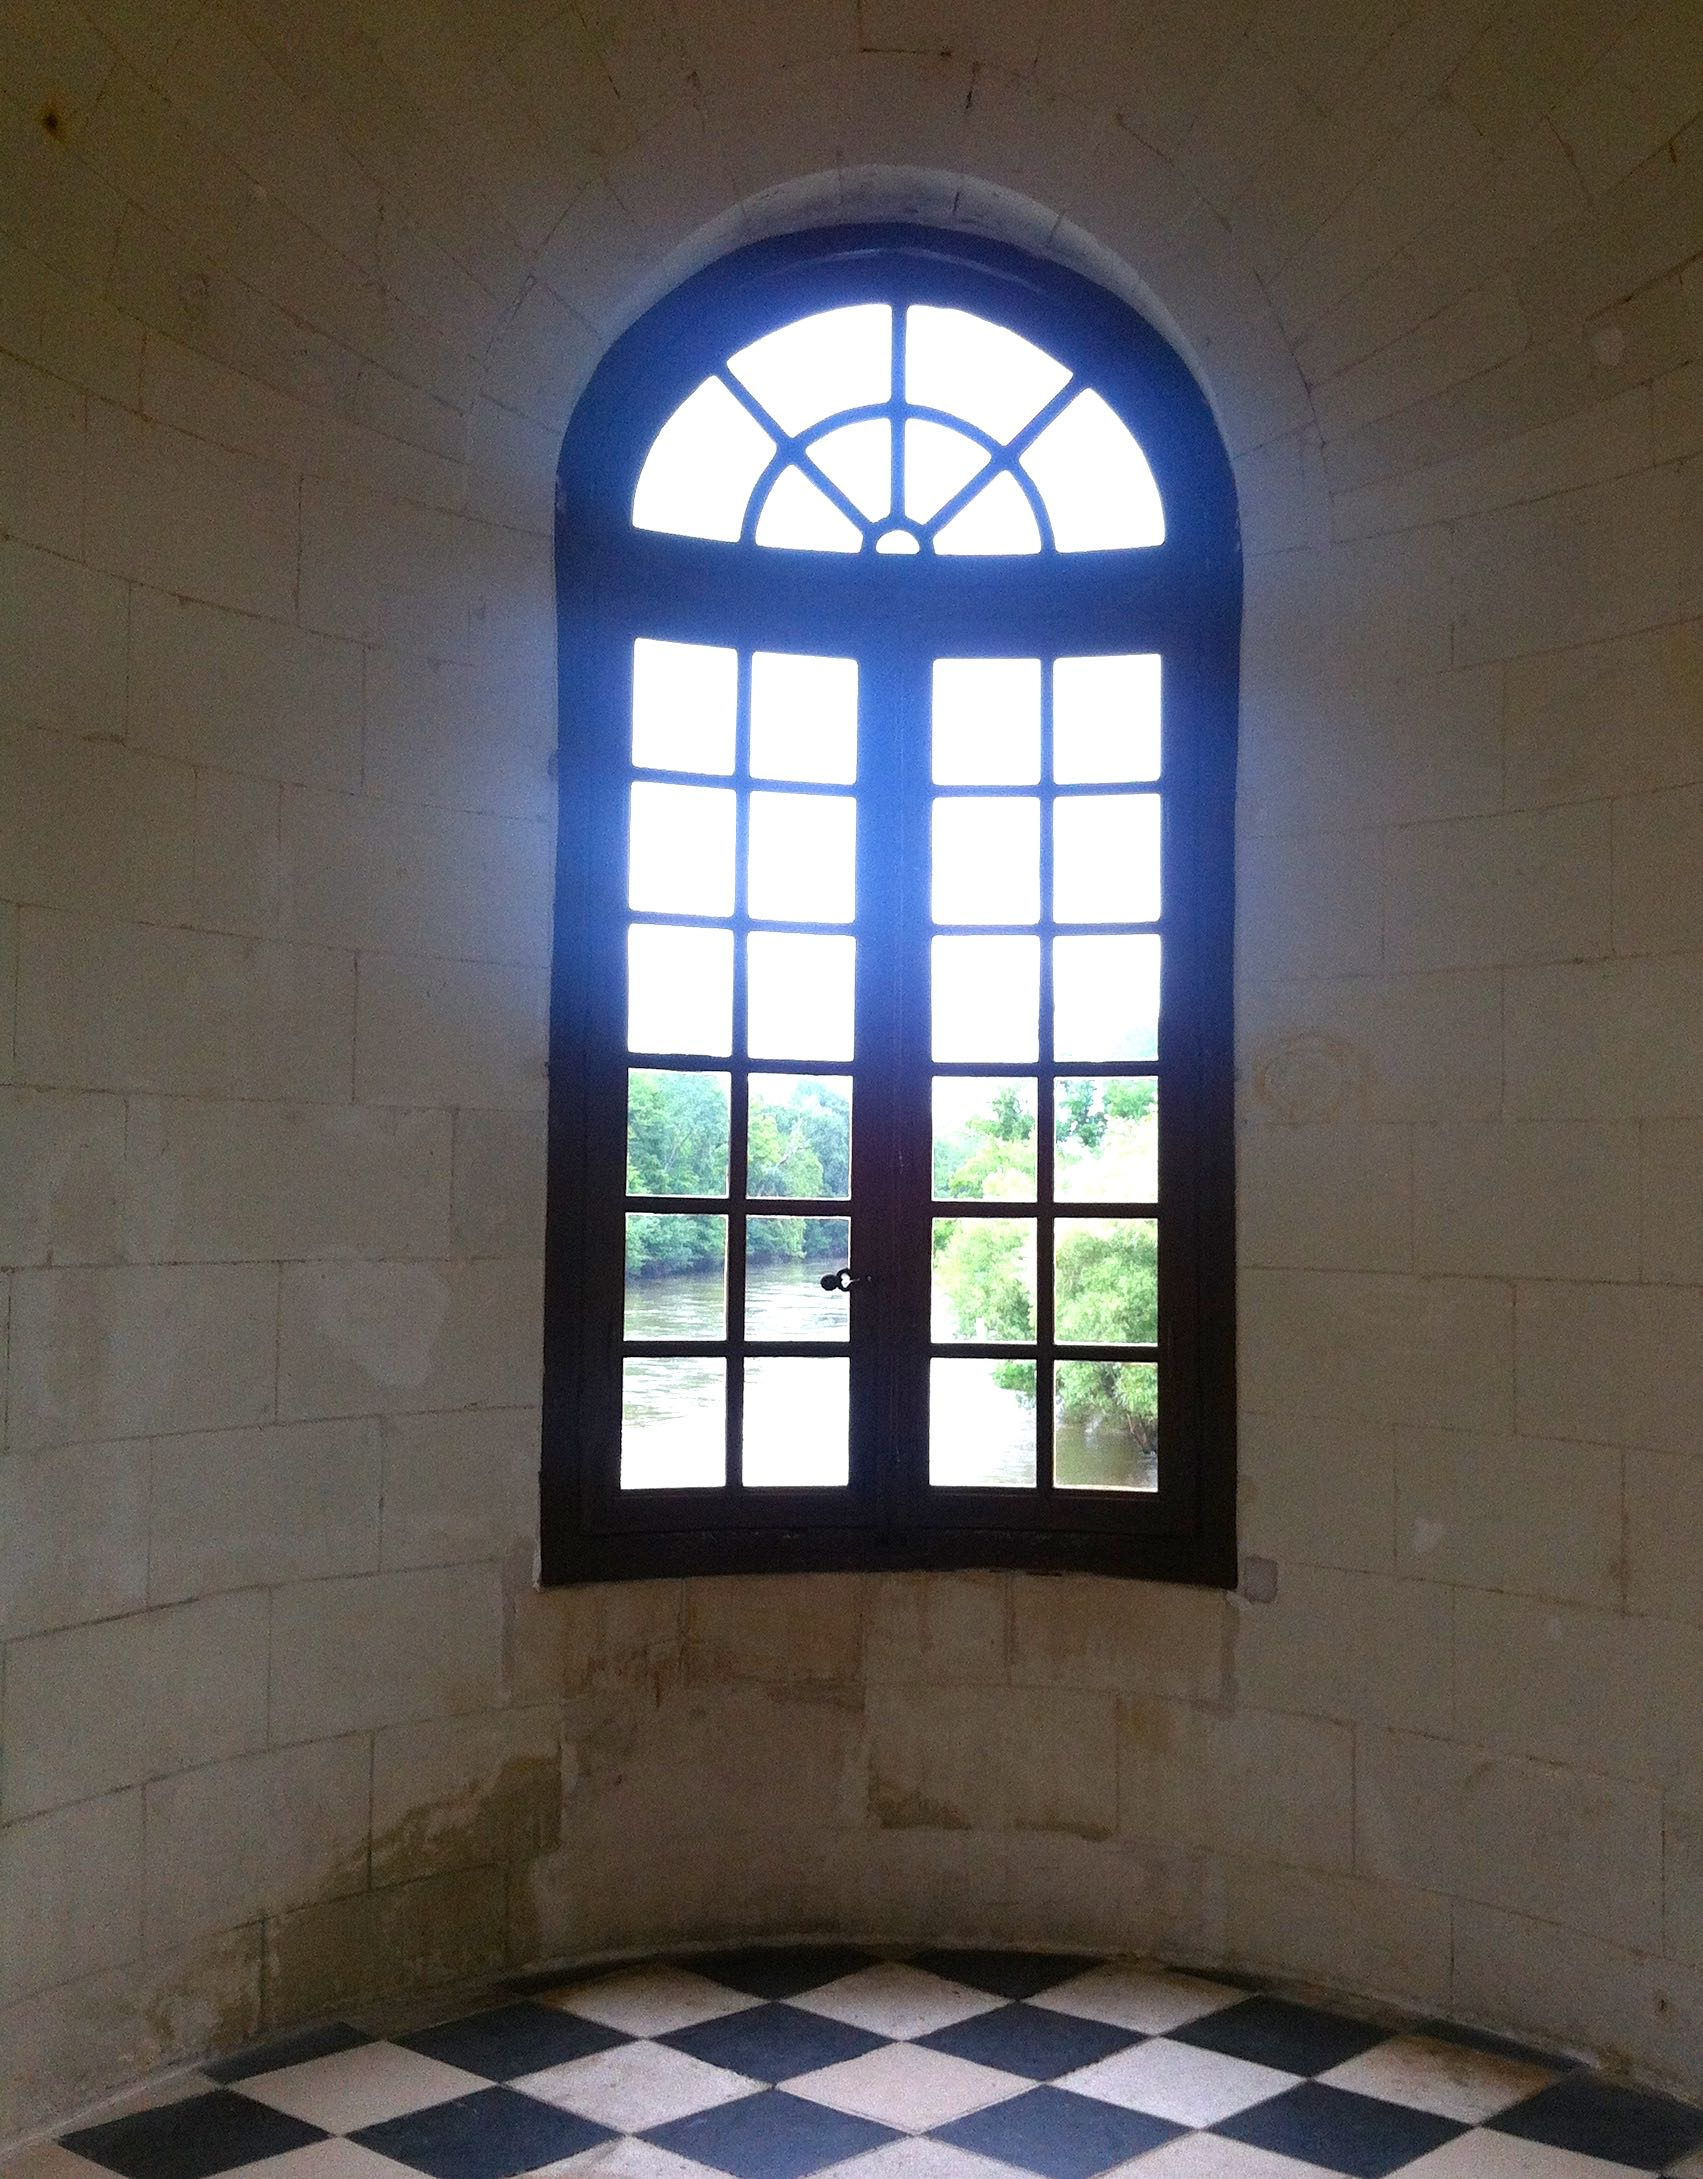 An arched window in The Gallery